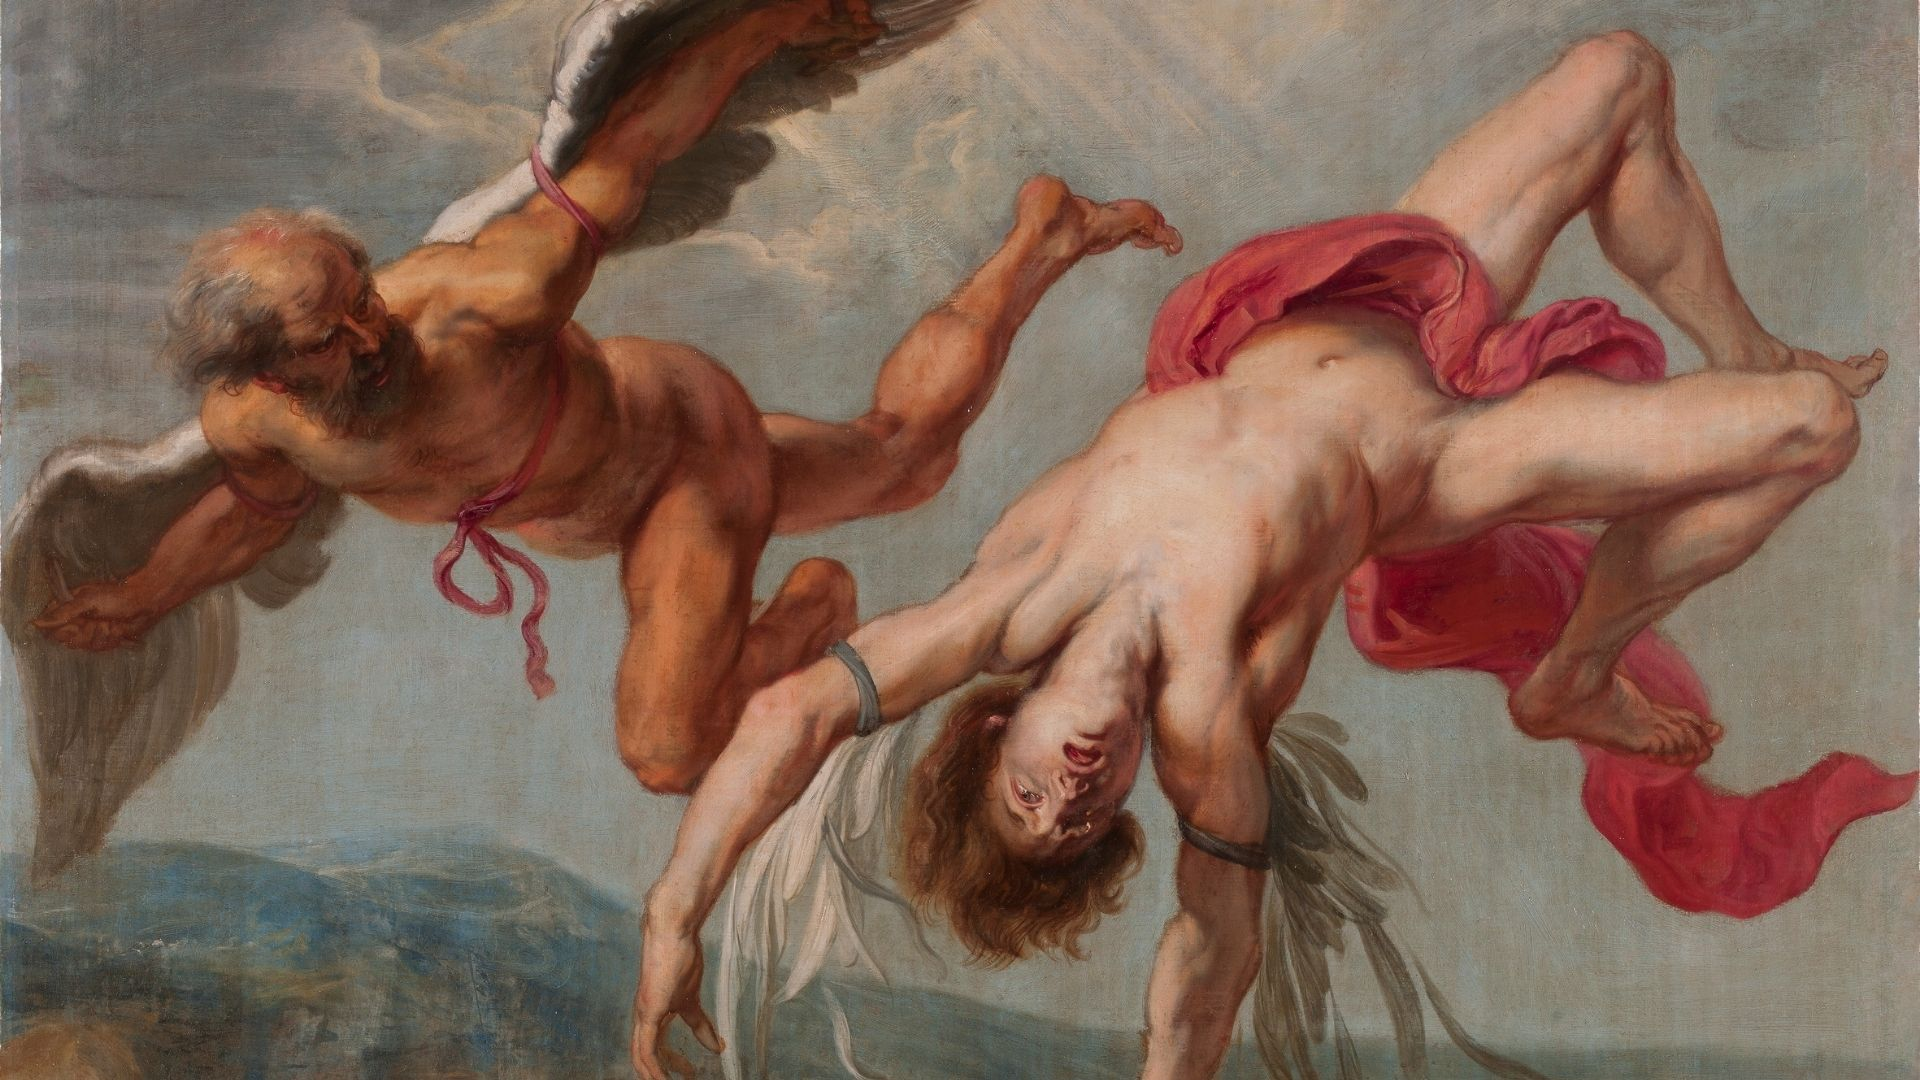 Episode 596 Word Power The Story of Icarus and Daedalus